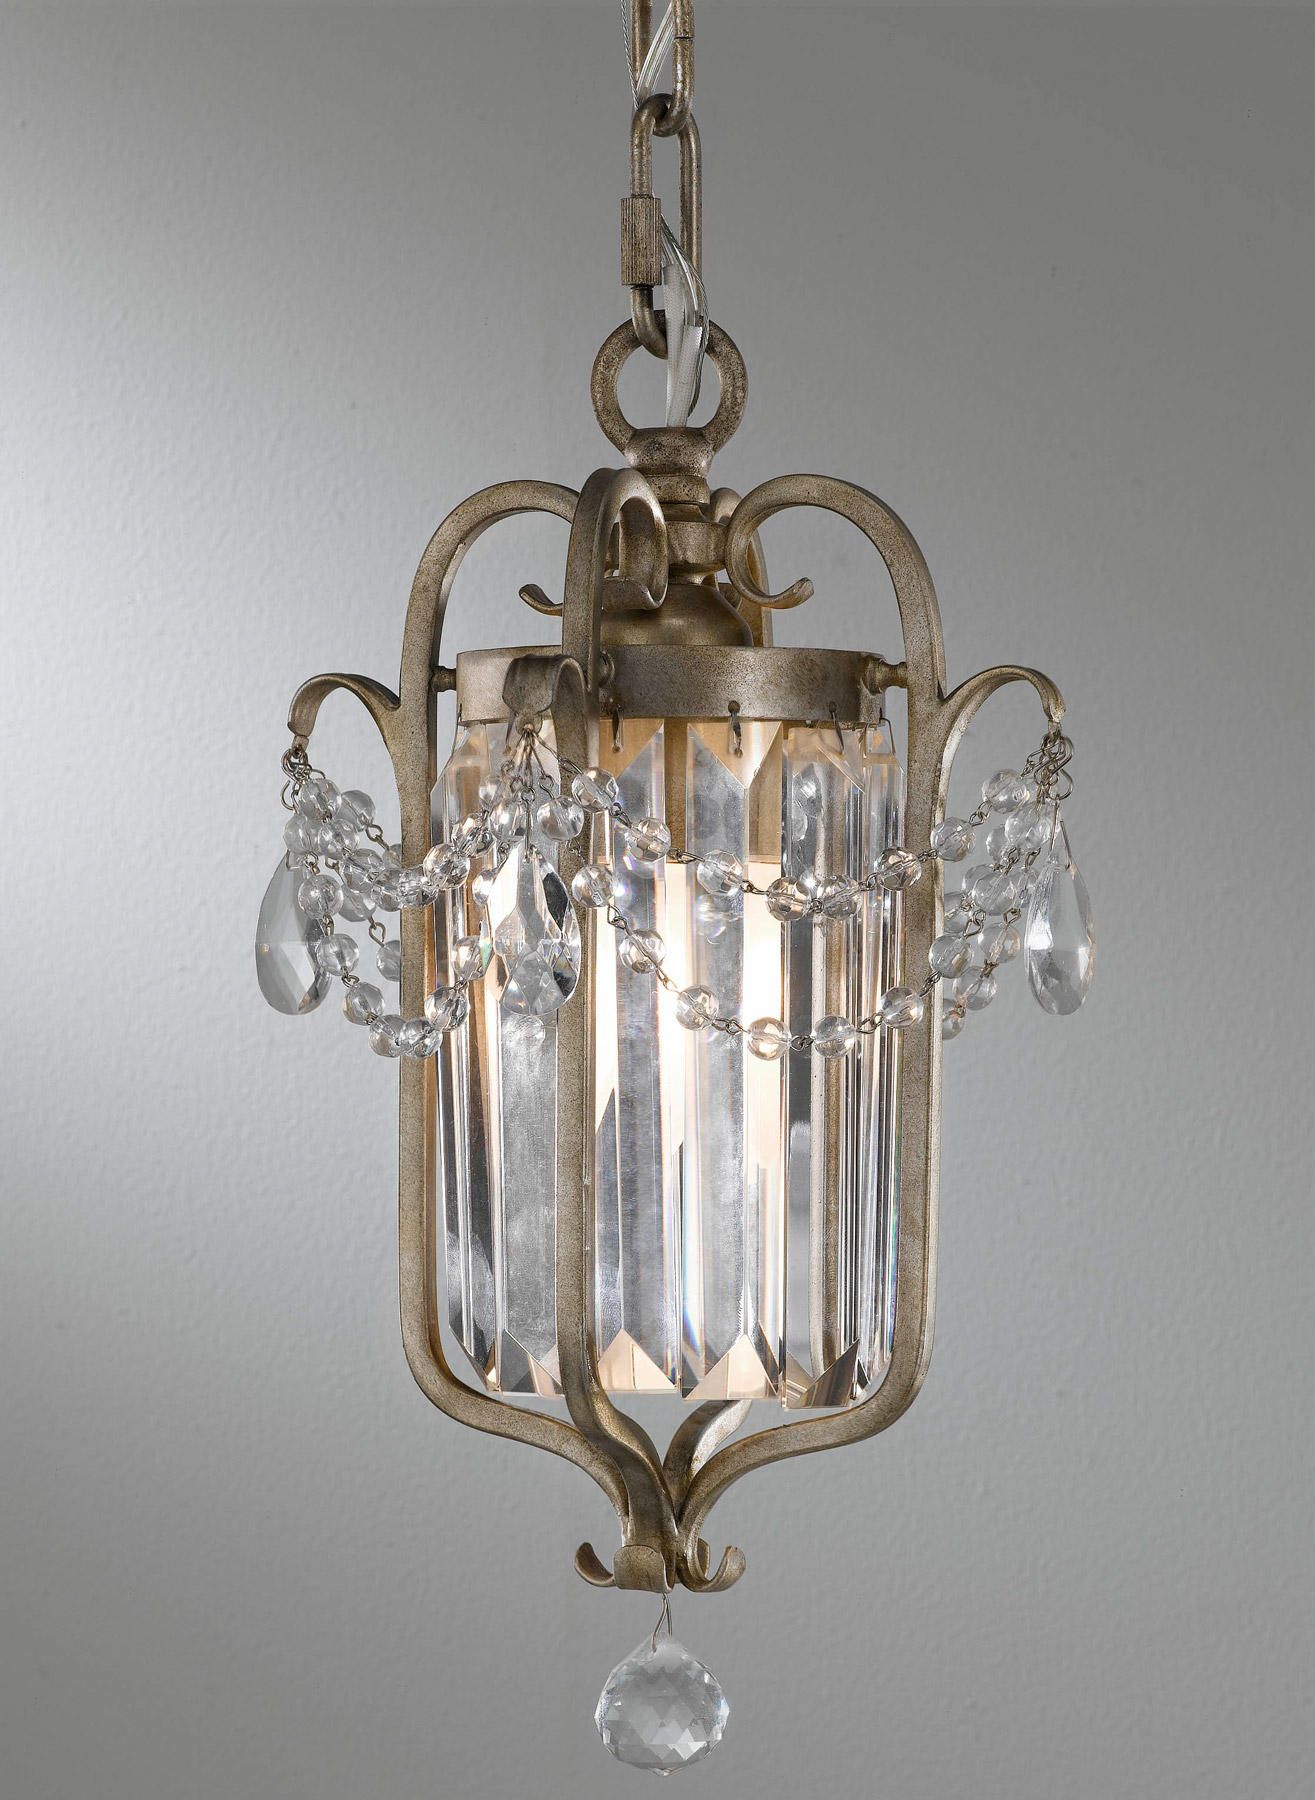 Murray Feiss F2474 1gs Crystal Gianna Mini Chandelier